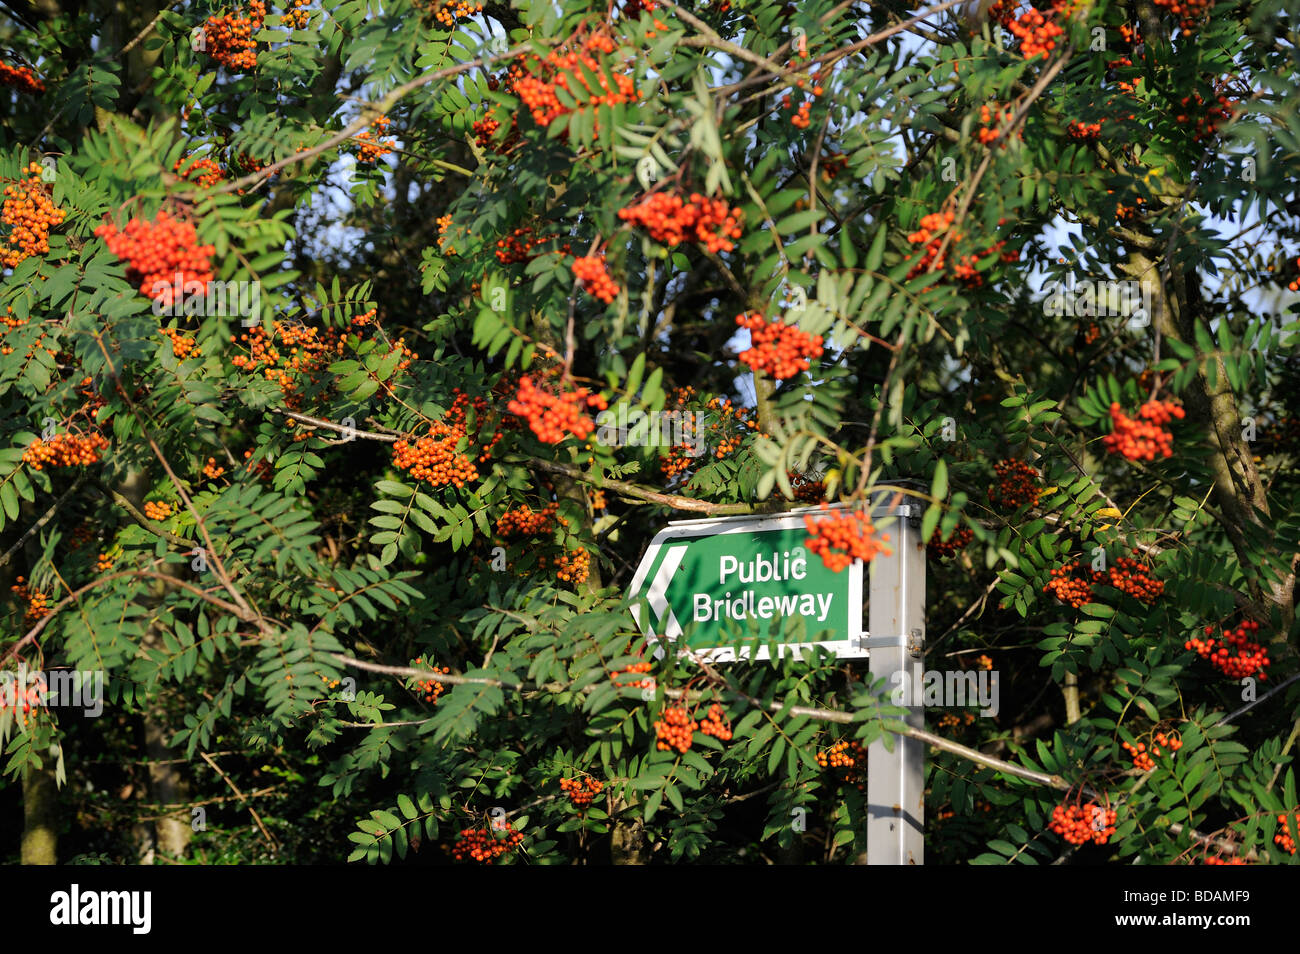 Public Bridleway sign walking rambling countryside  North East England - Stock Image